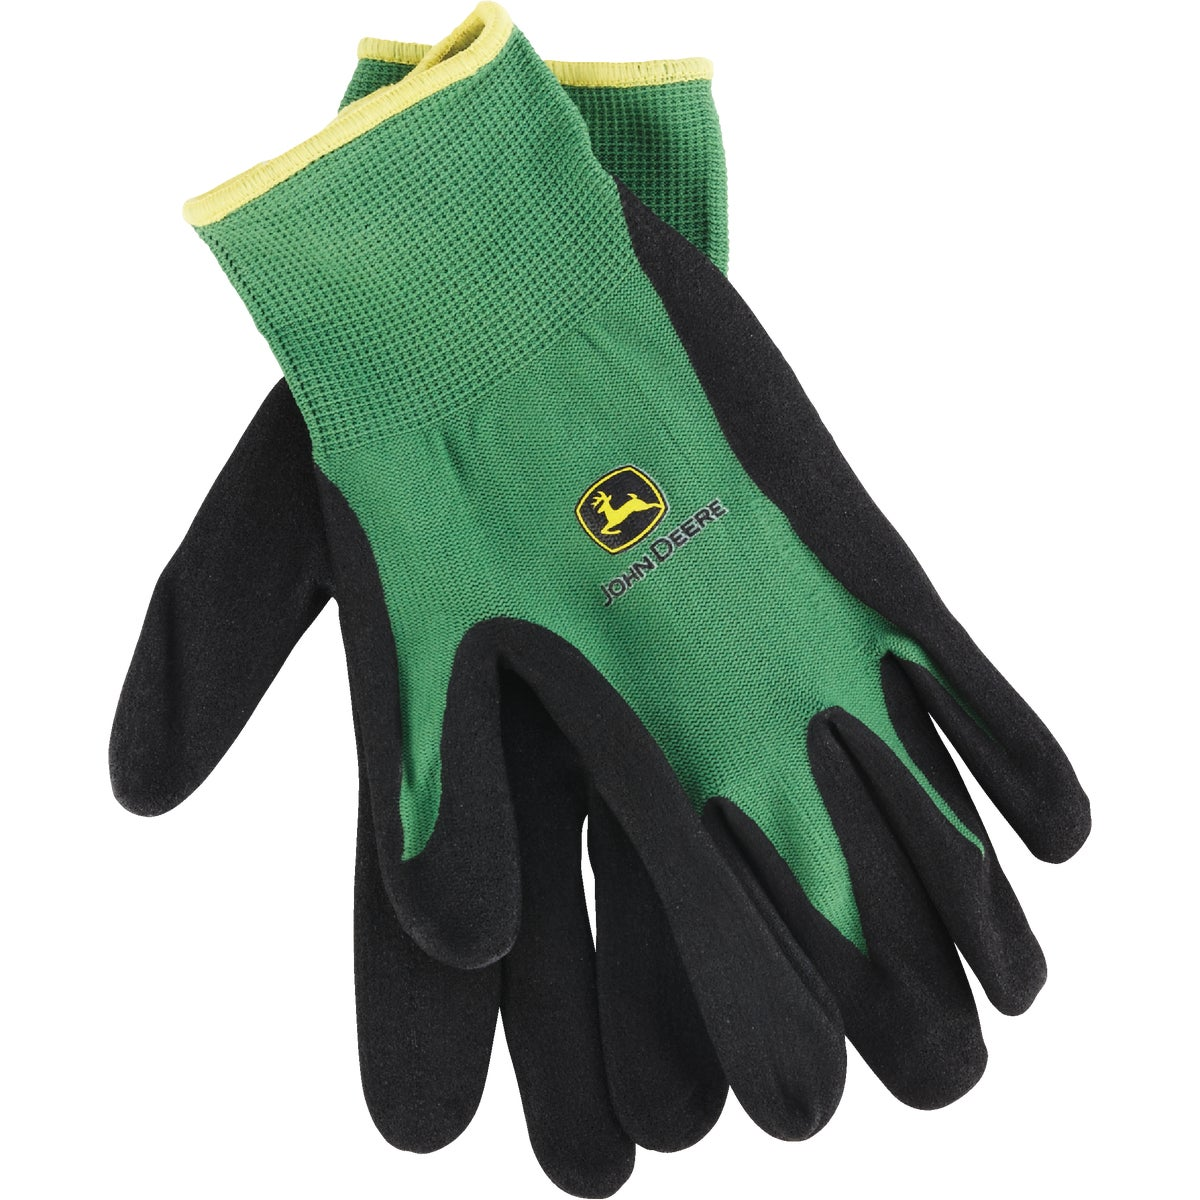 LRG NITRILE PALM GLOVE - JD00018/L by West Chester Incom